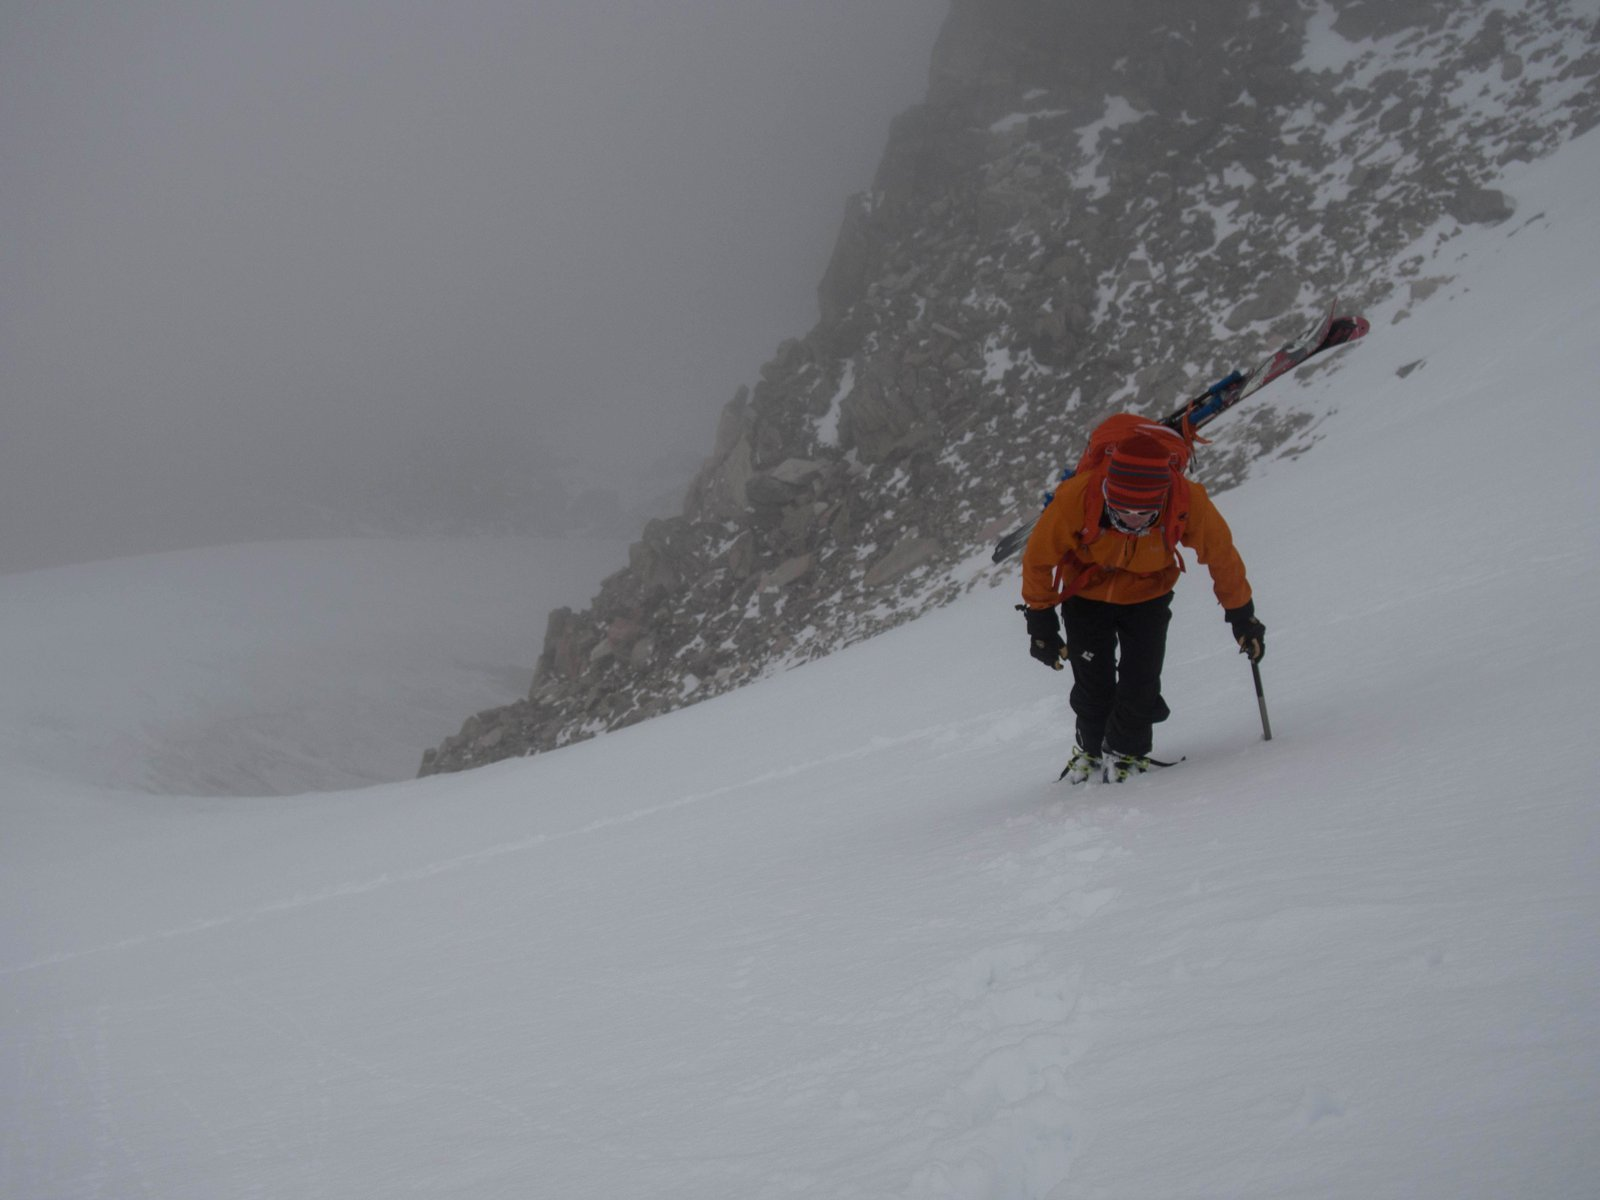 Heading up in the perpetual fog of The Sharkstooth